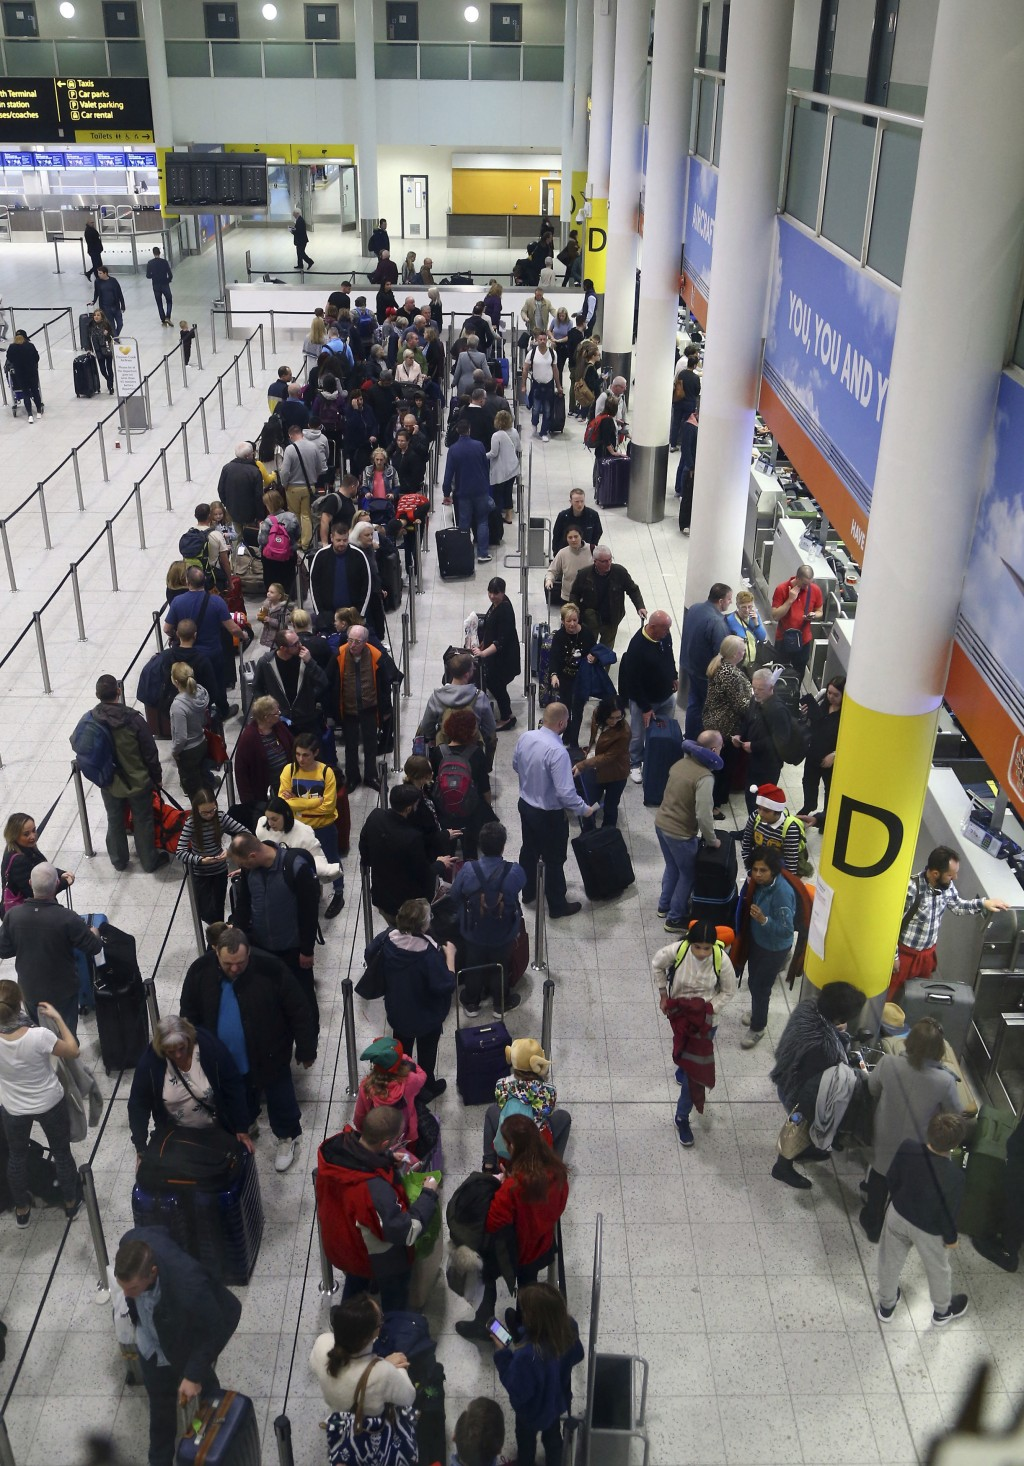 Passengers queue for flights at Gatwick Airport as the airport and airlines work to clear the backlog of flights delayed by a drone incident earlier i...